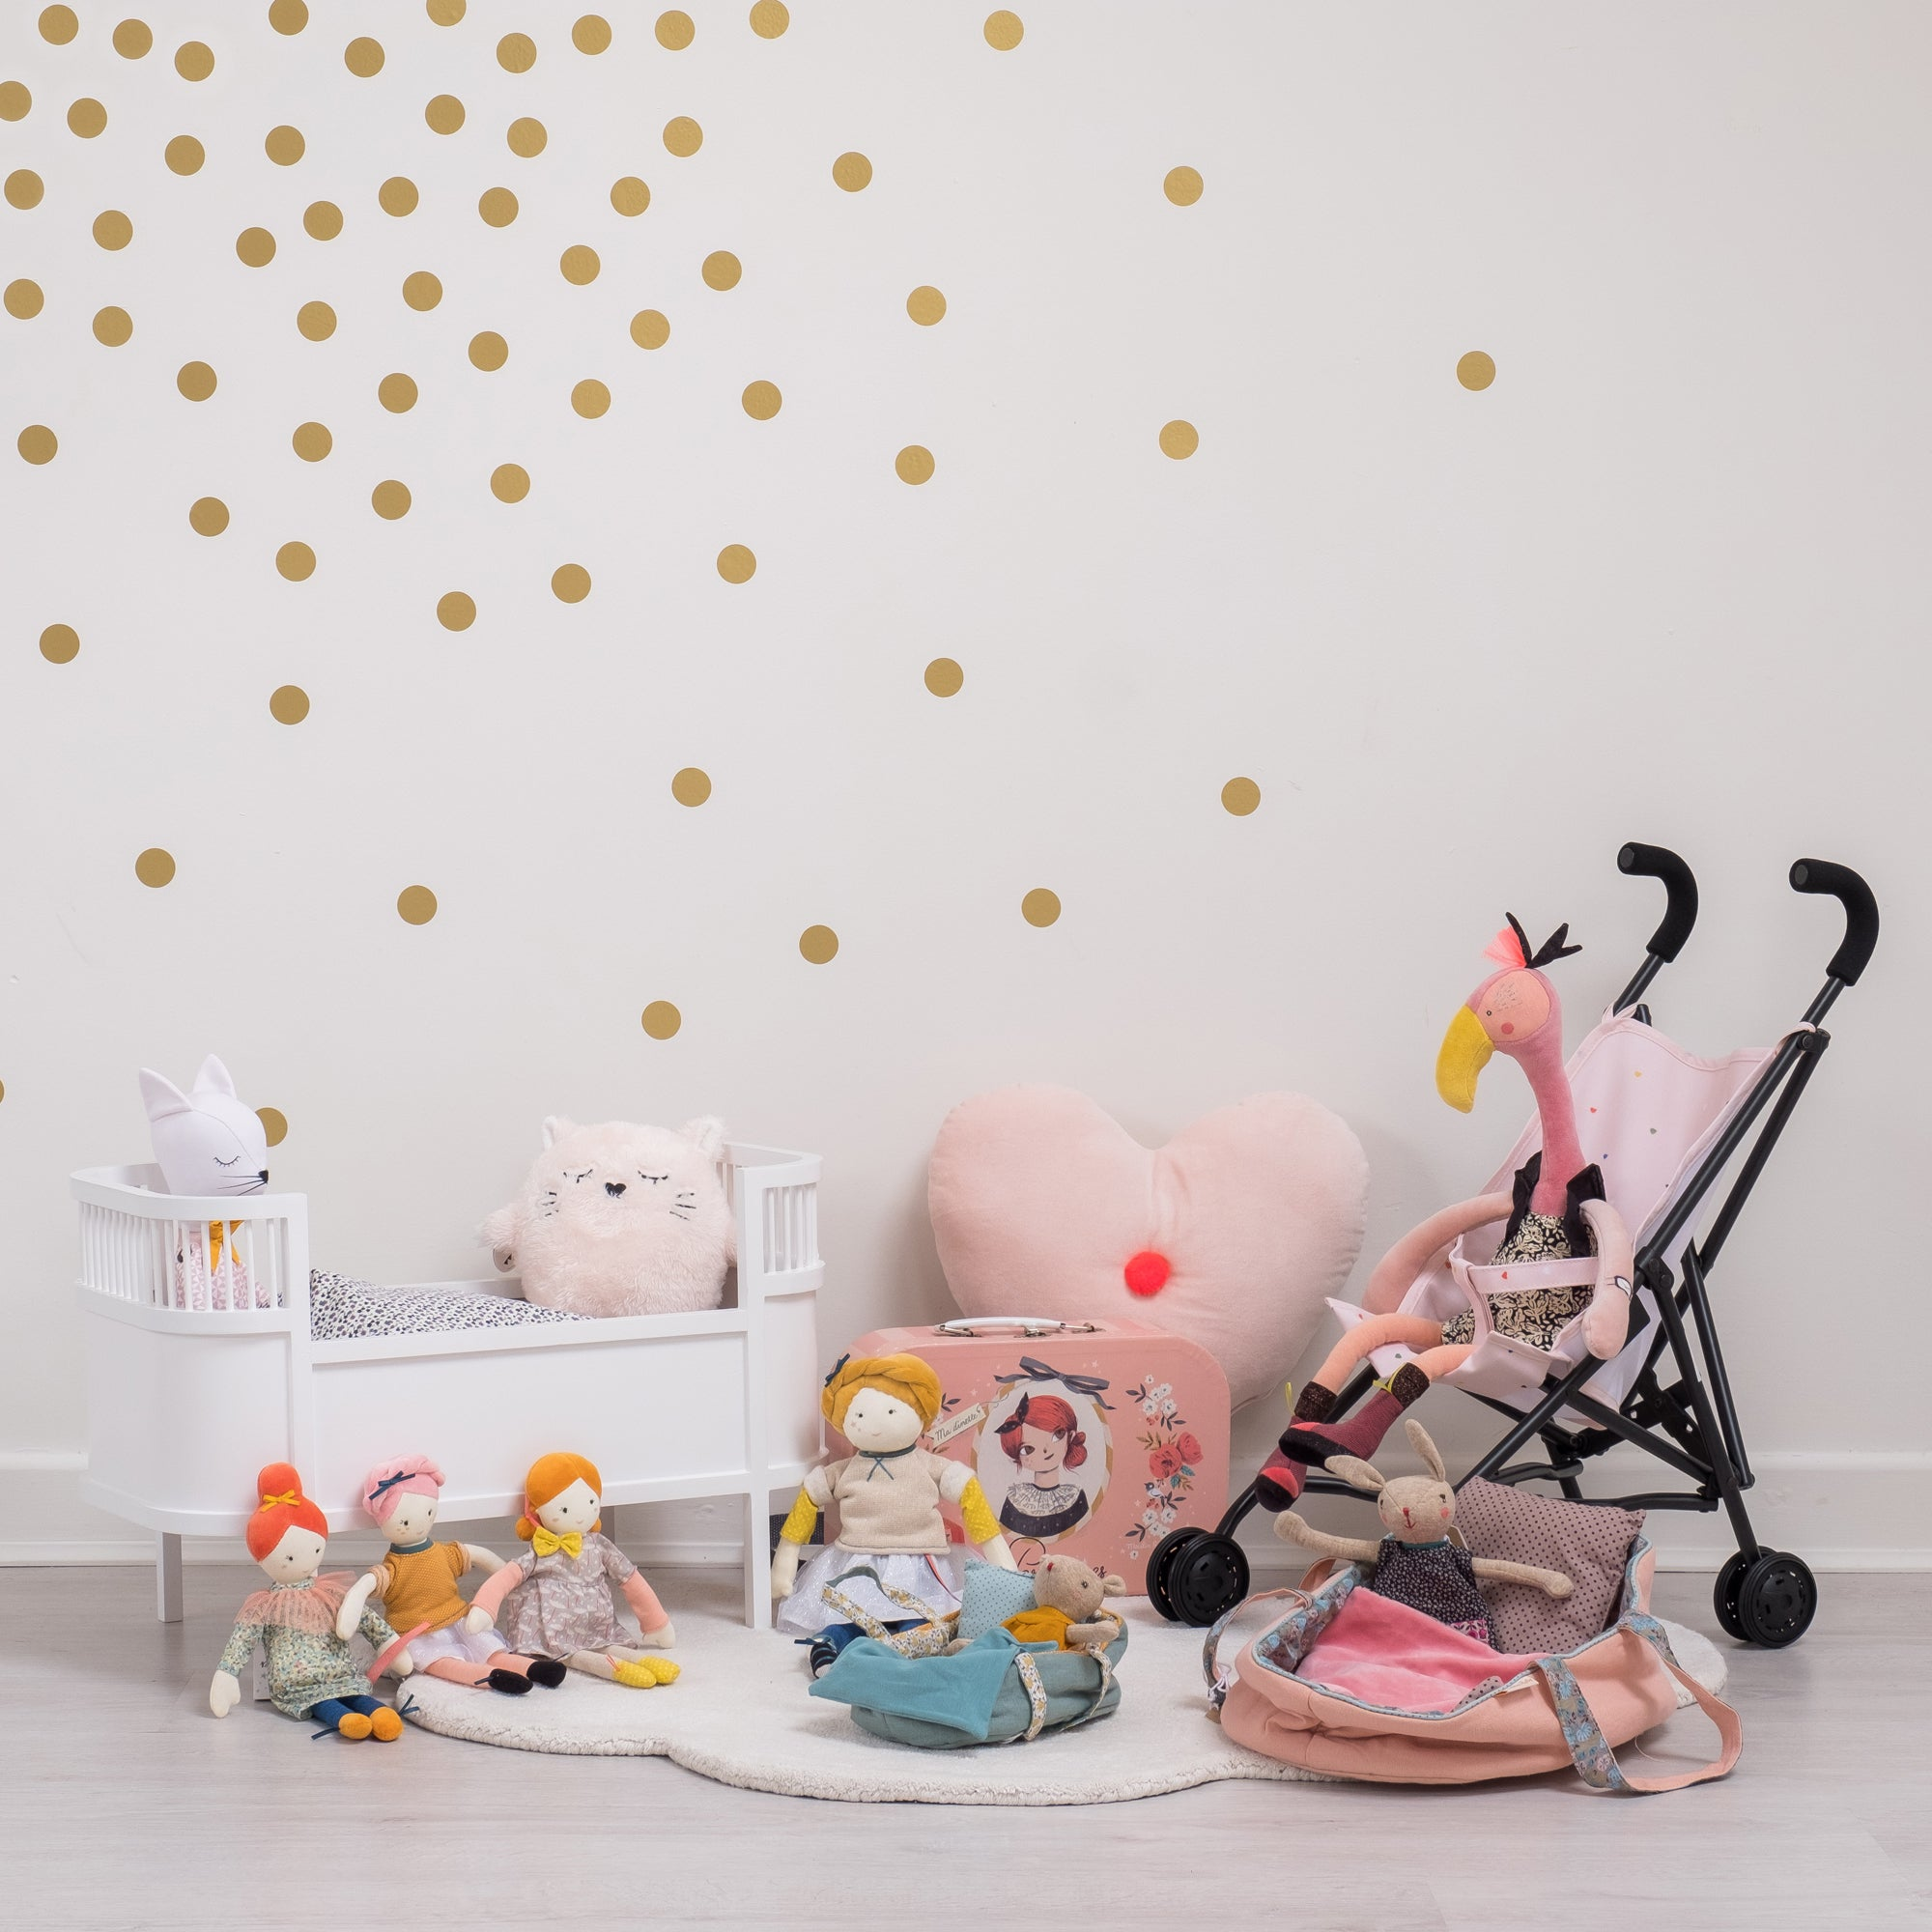 Toys and children's room accessories, available at Bobby Rabbit.